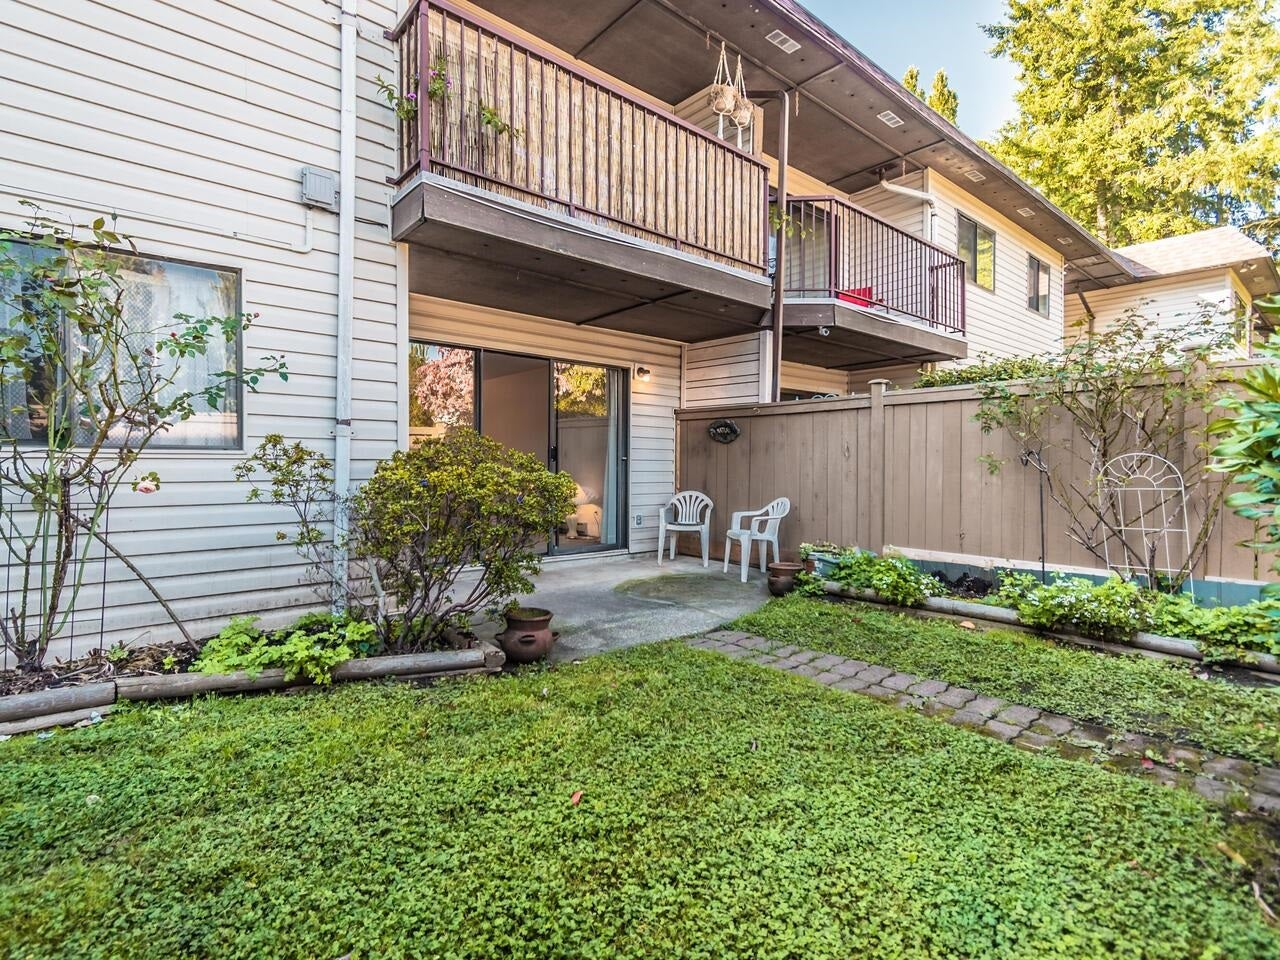 107 5191 203 STREET - Langley City Apartment/Condo for sale, 2 Bedrooms (R2625712) - #19